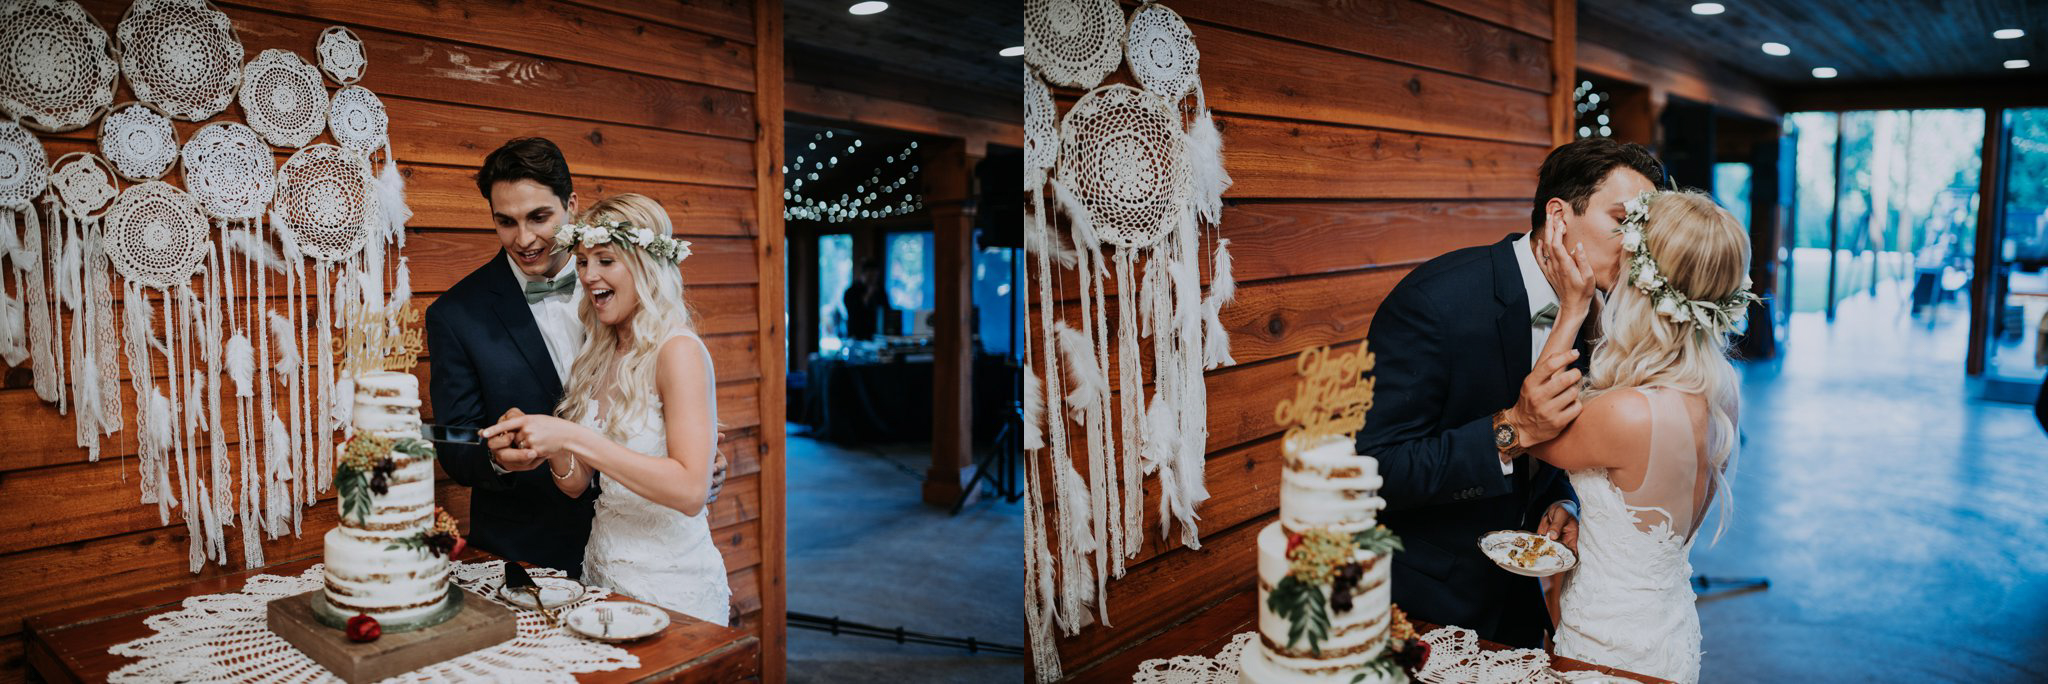 trinity-tree-farm-issaquah-washington-wedding-seattle-lifestyle-photographer-caitlyn-nikula-photography-91.jpg